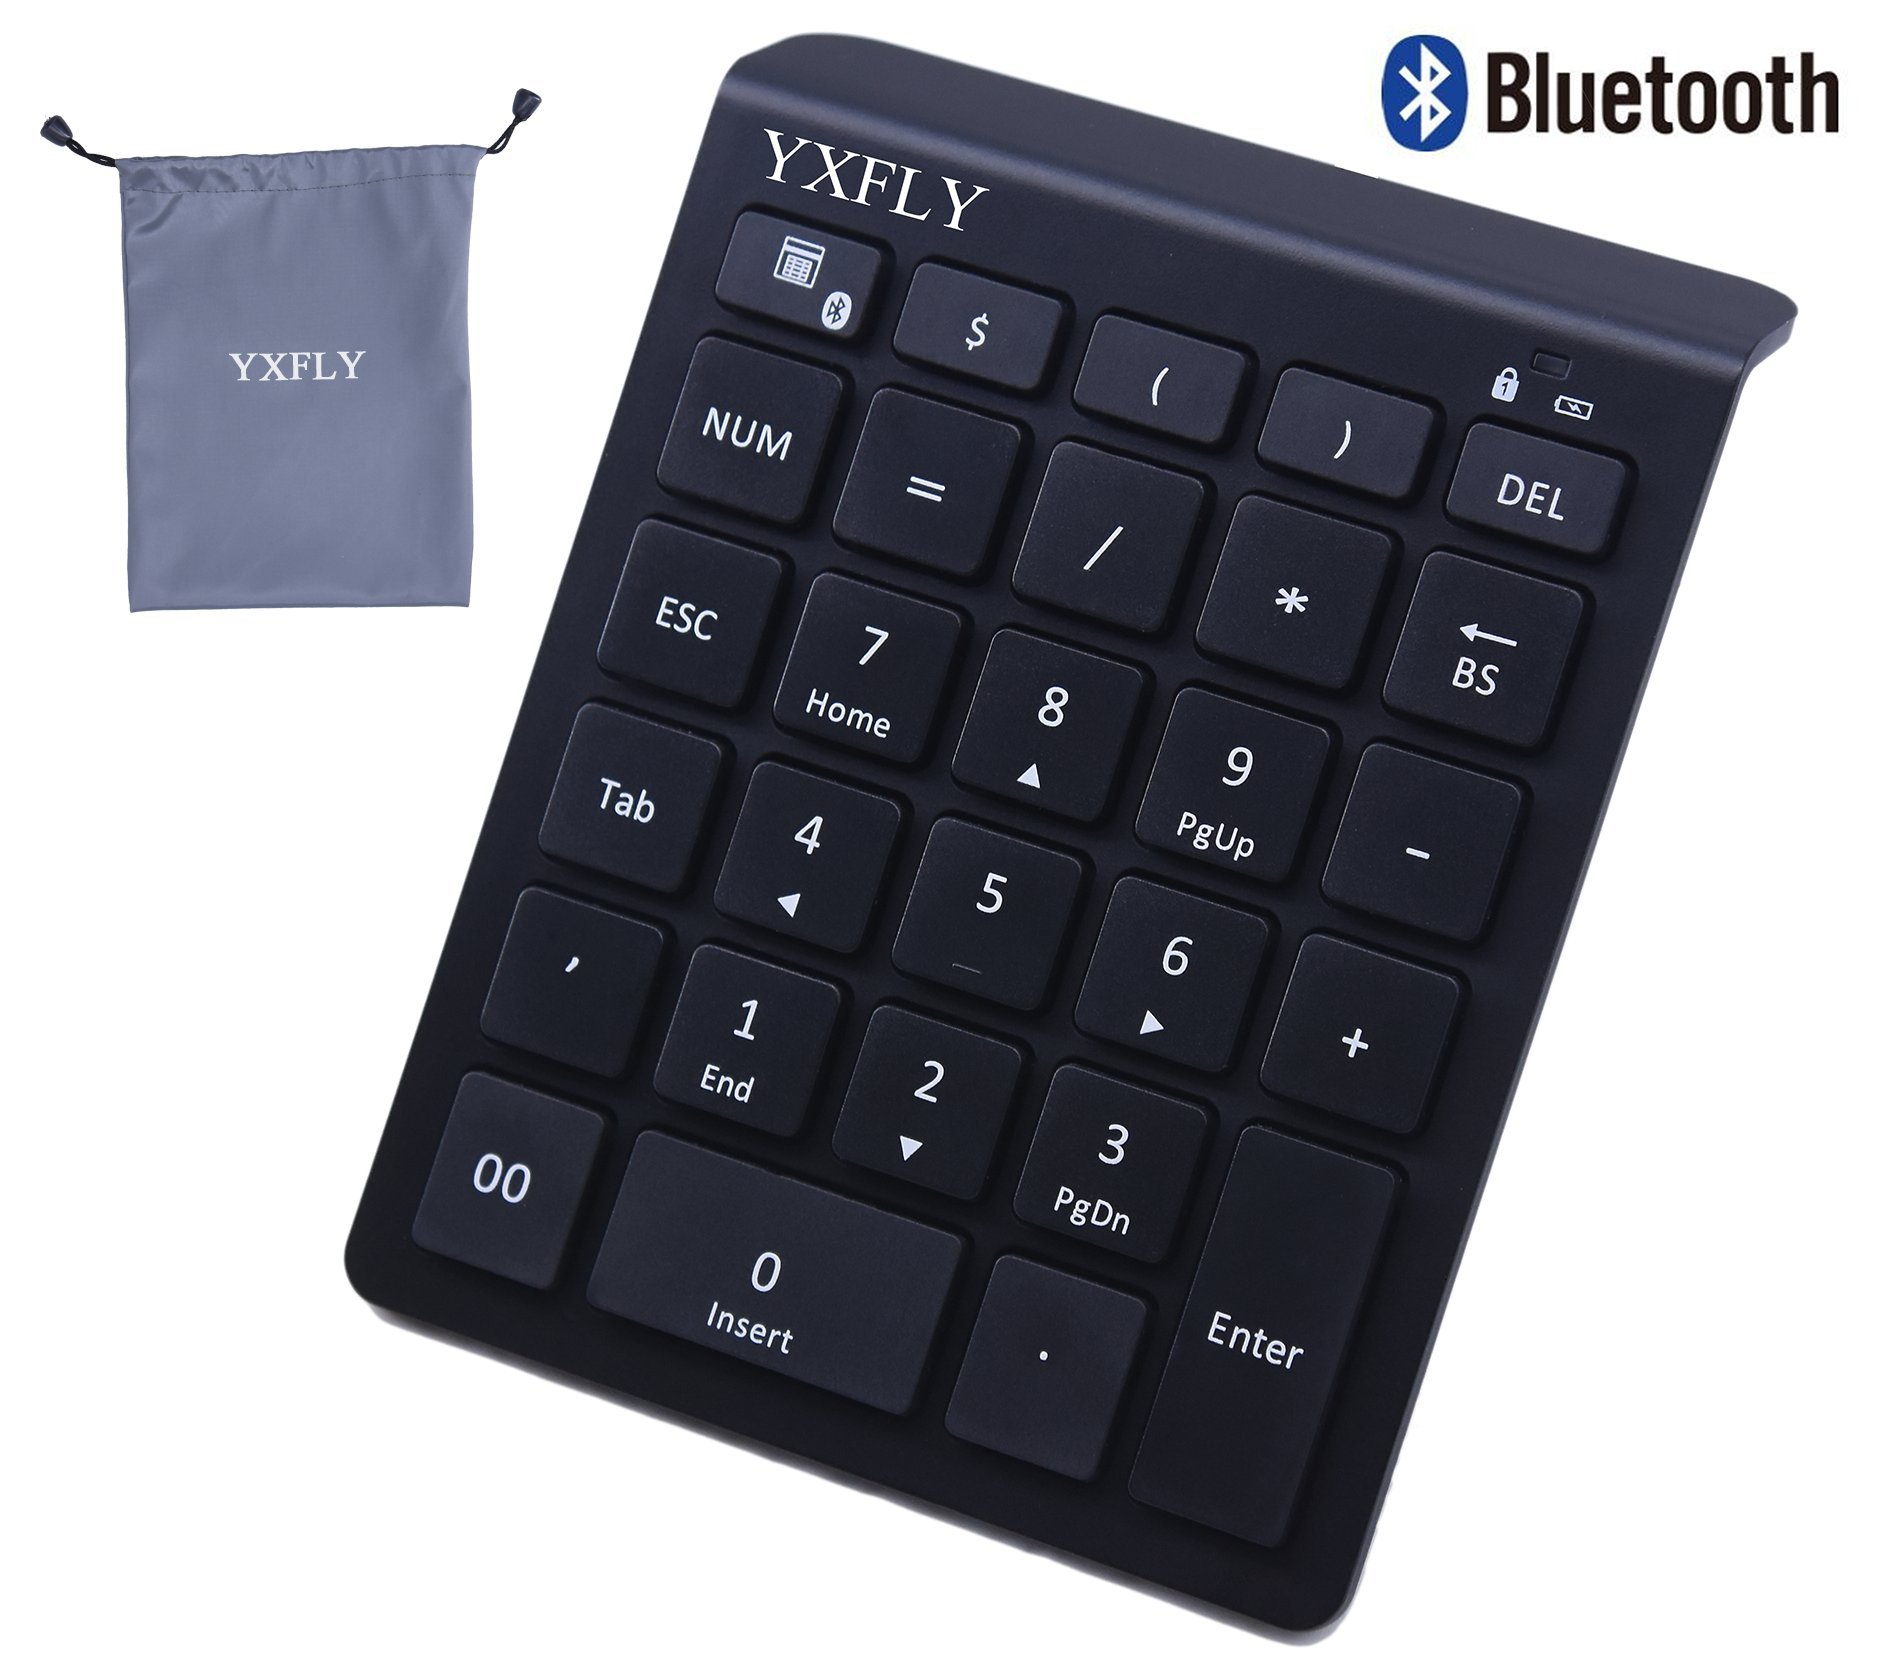 YXFLY Ultra Slim 28 Keys Bluetooth Numeric Keypad, Bluetooth 3.0 Number Pad Scissor-Switch Keypad for Surface Pro Laptop Tablet